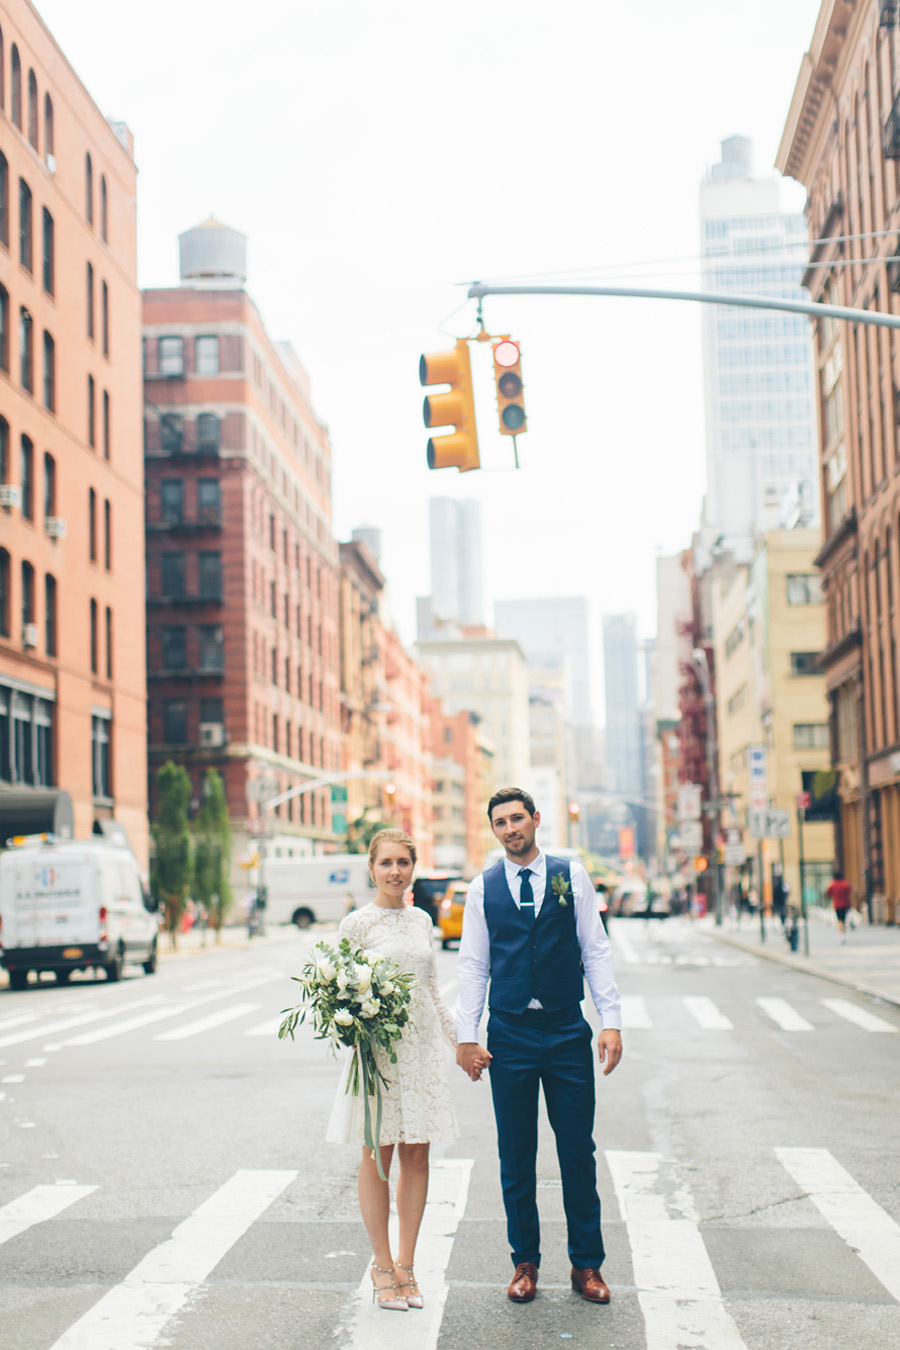 NYC-WEDDING-PHOTOGRAPHER-NY-CITYHALL-DESTINATION-ELOPEMENT-INTIMATE-WEDDING-CENTRAL-PARK-BROOKLYN-WEDDING-WILLIAMSBURG-SOHO-CHELSEA-THE-HIGH-LINE-038.jpg